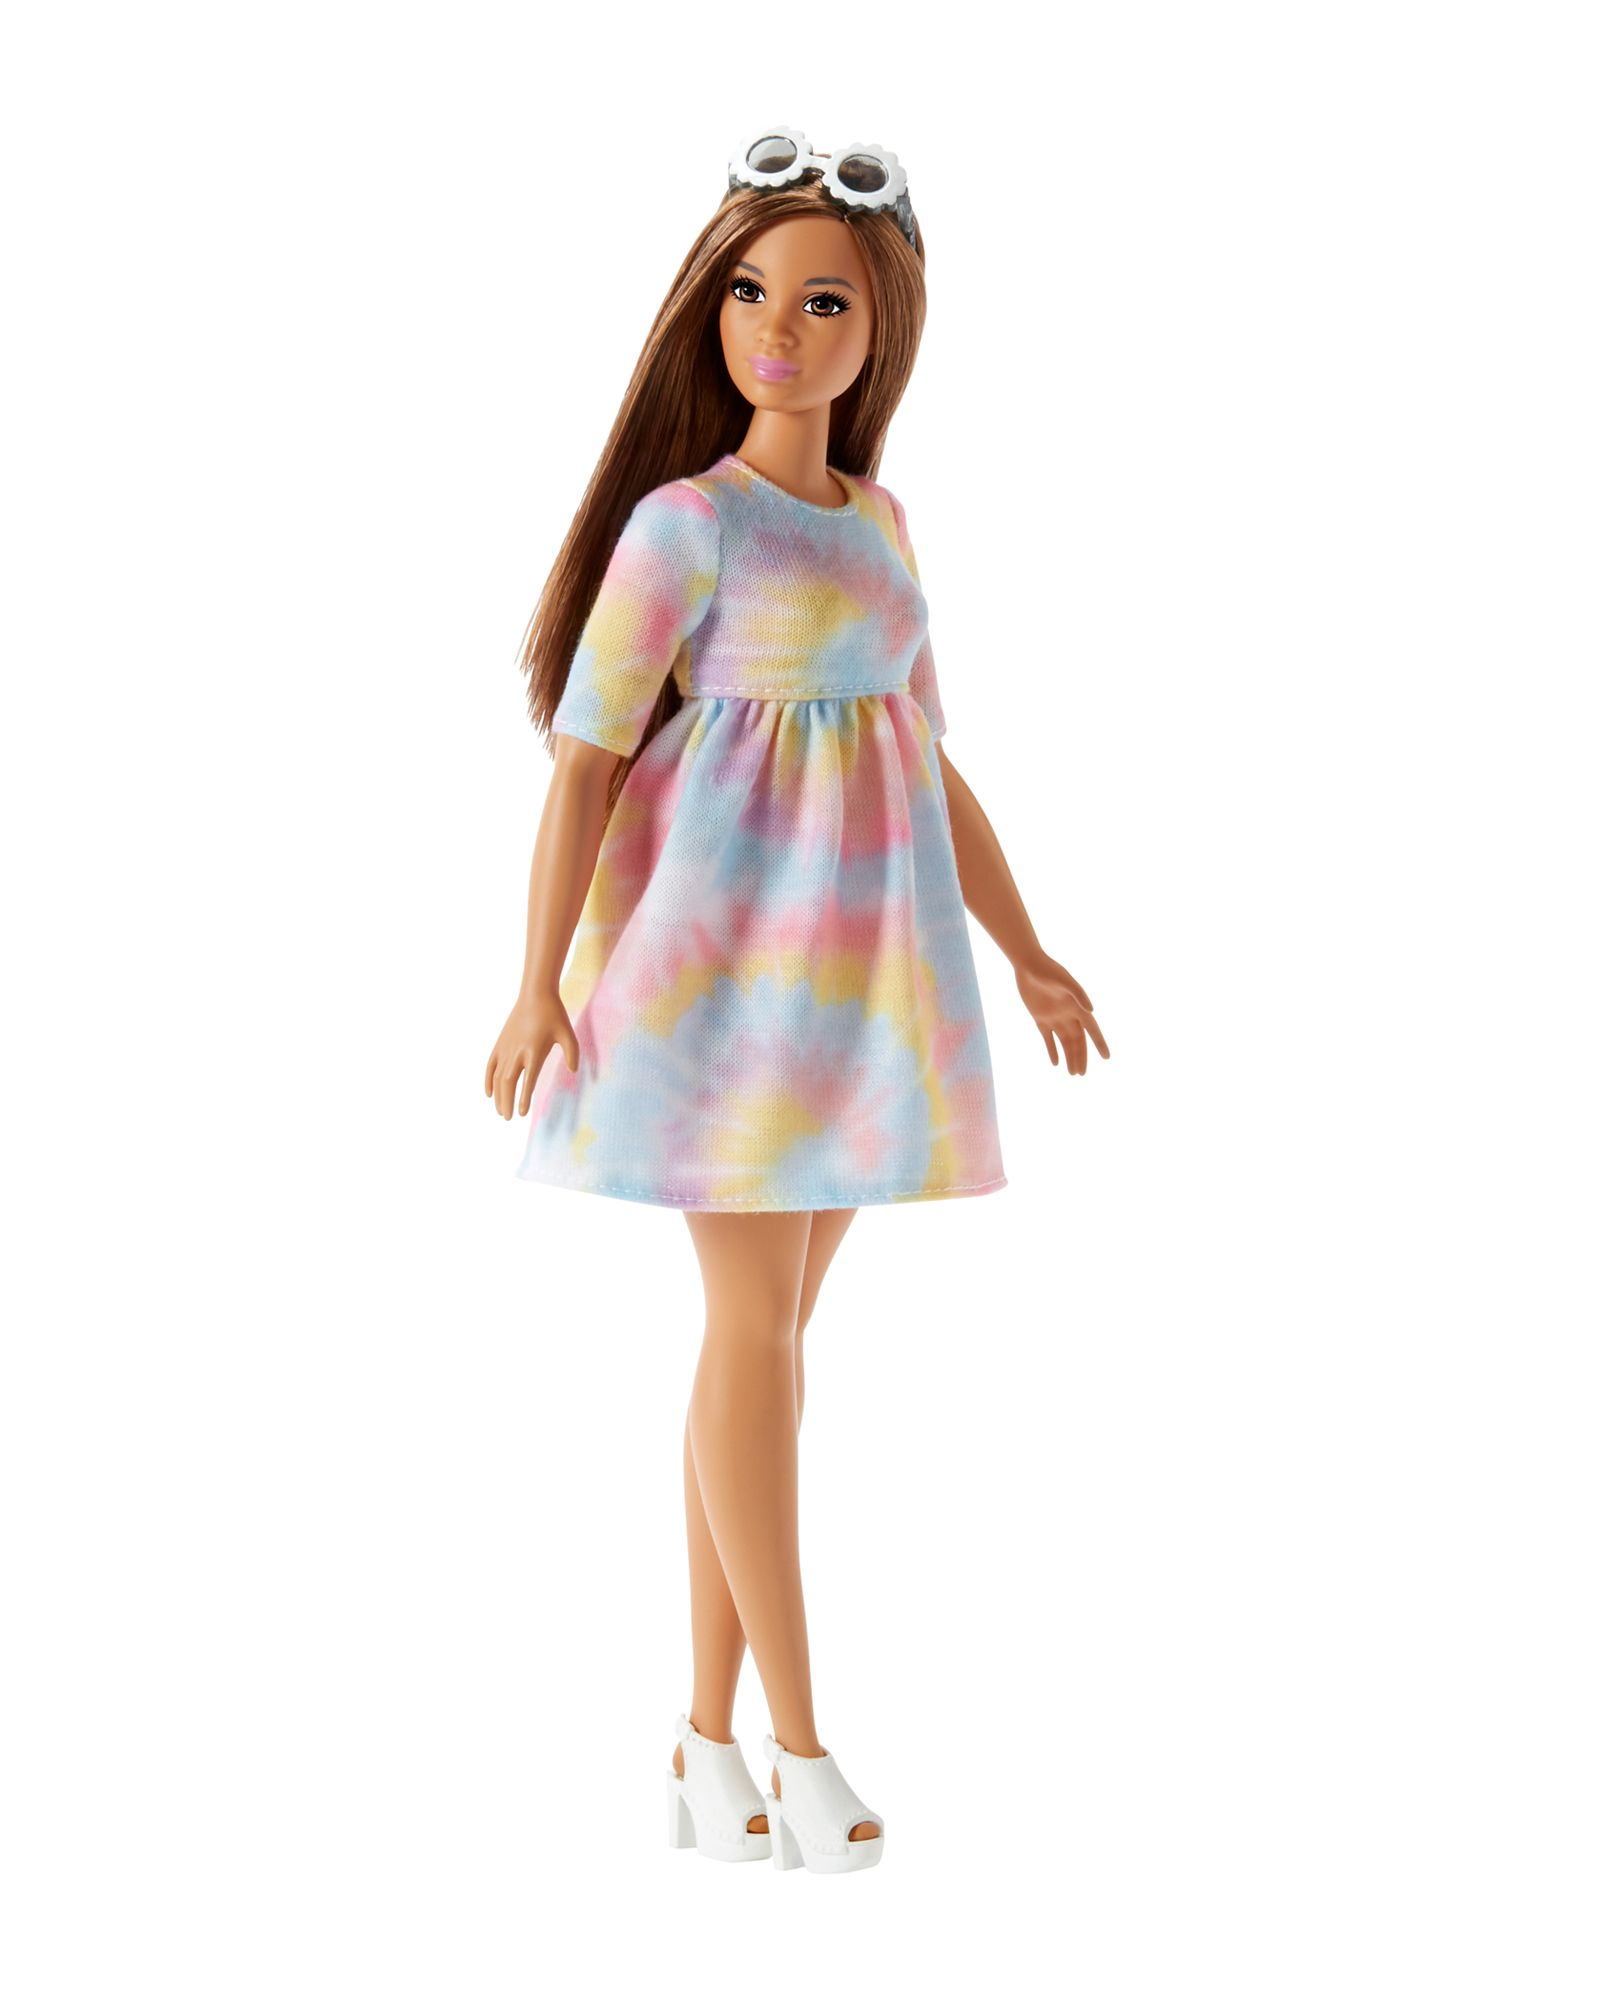 METALLIC LIGHT BLUE  Dress FOR TALL /& Original fashionista BARBIE body